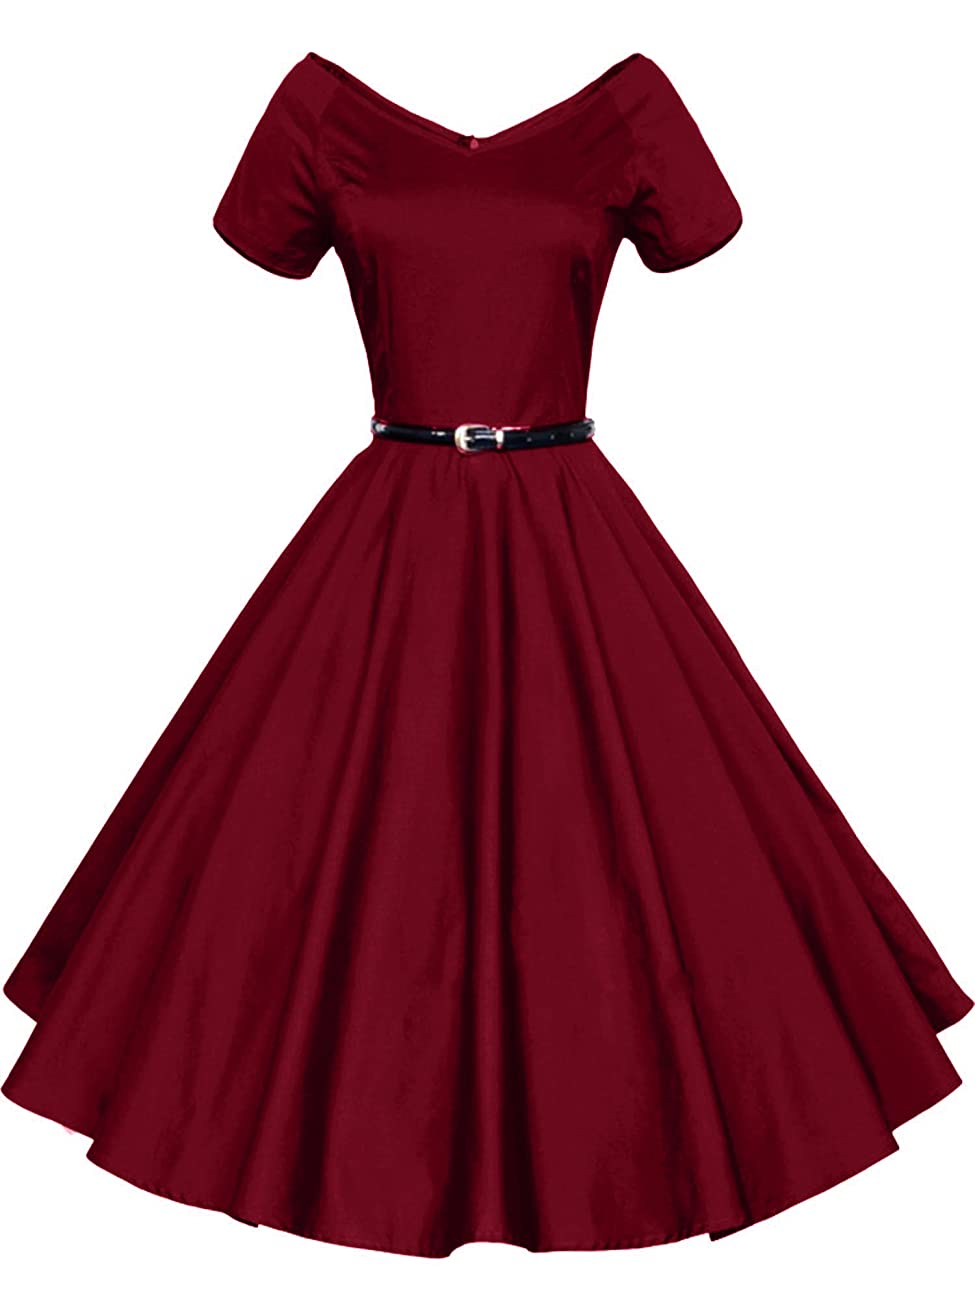 iLover Women 1950s V-Neck Vintage Rockabilly Swing Evening Party Dress 0